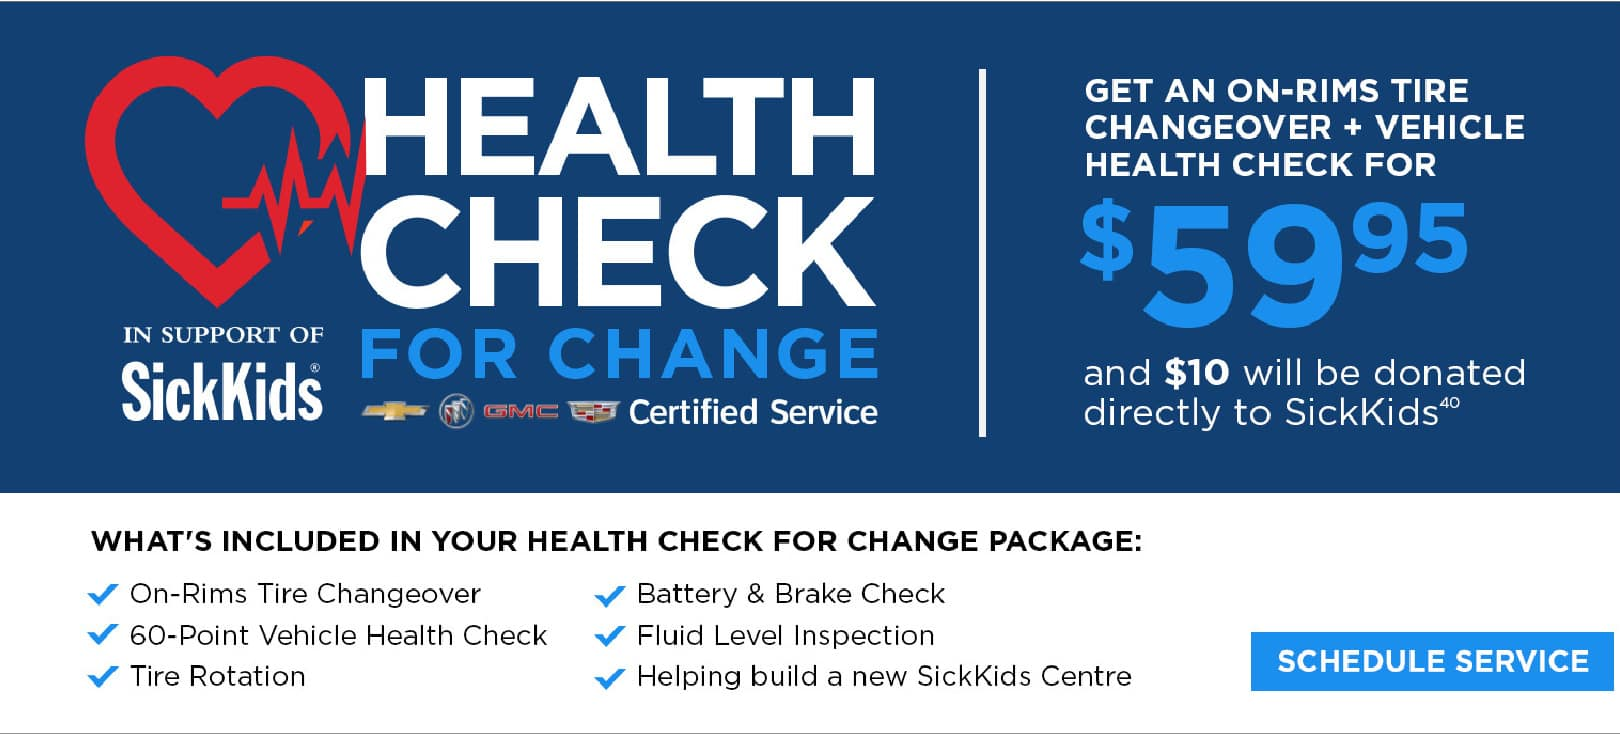 Vehicle Health Check Offer and $59 on-rim tire changoever